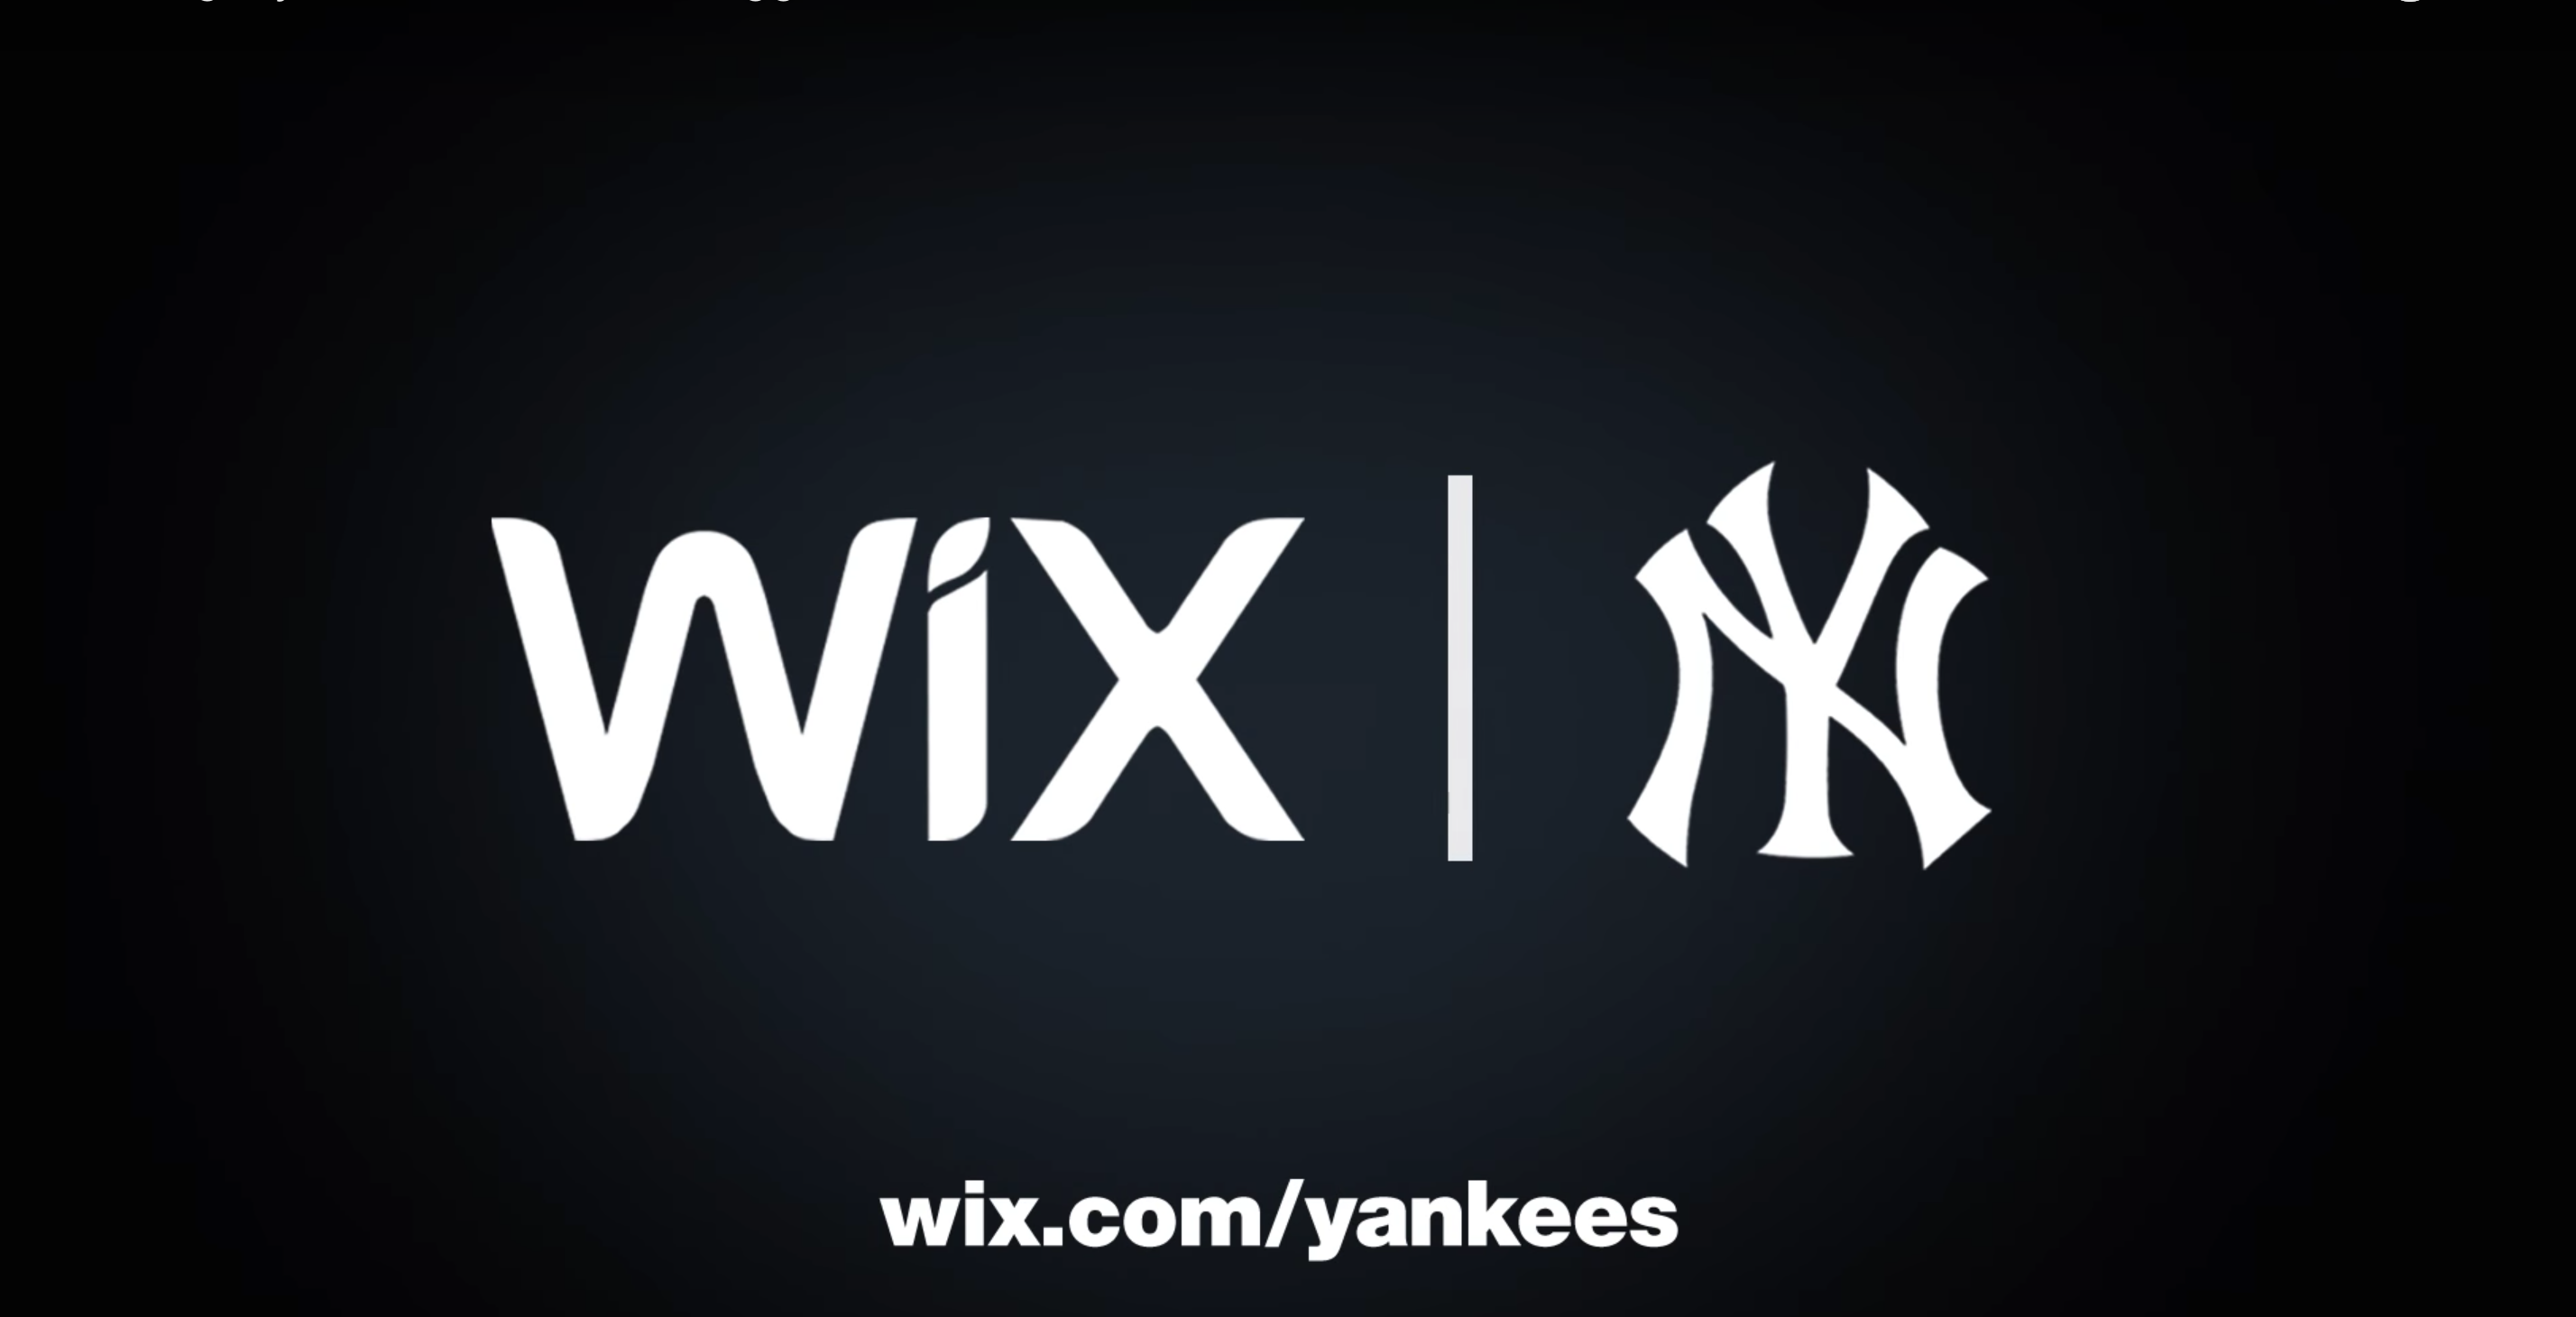 WIX + YANKEES (Biggest Fan/Mariano)